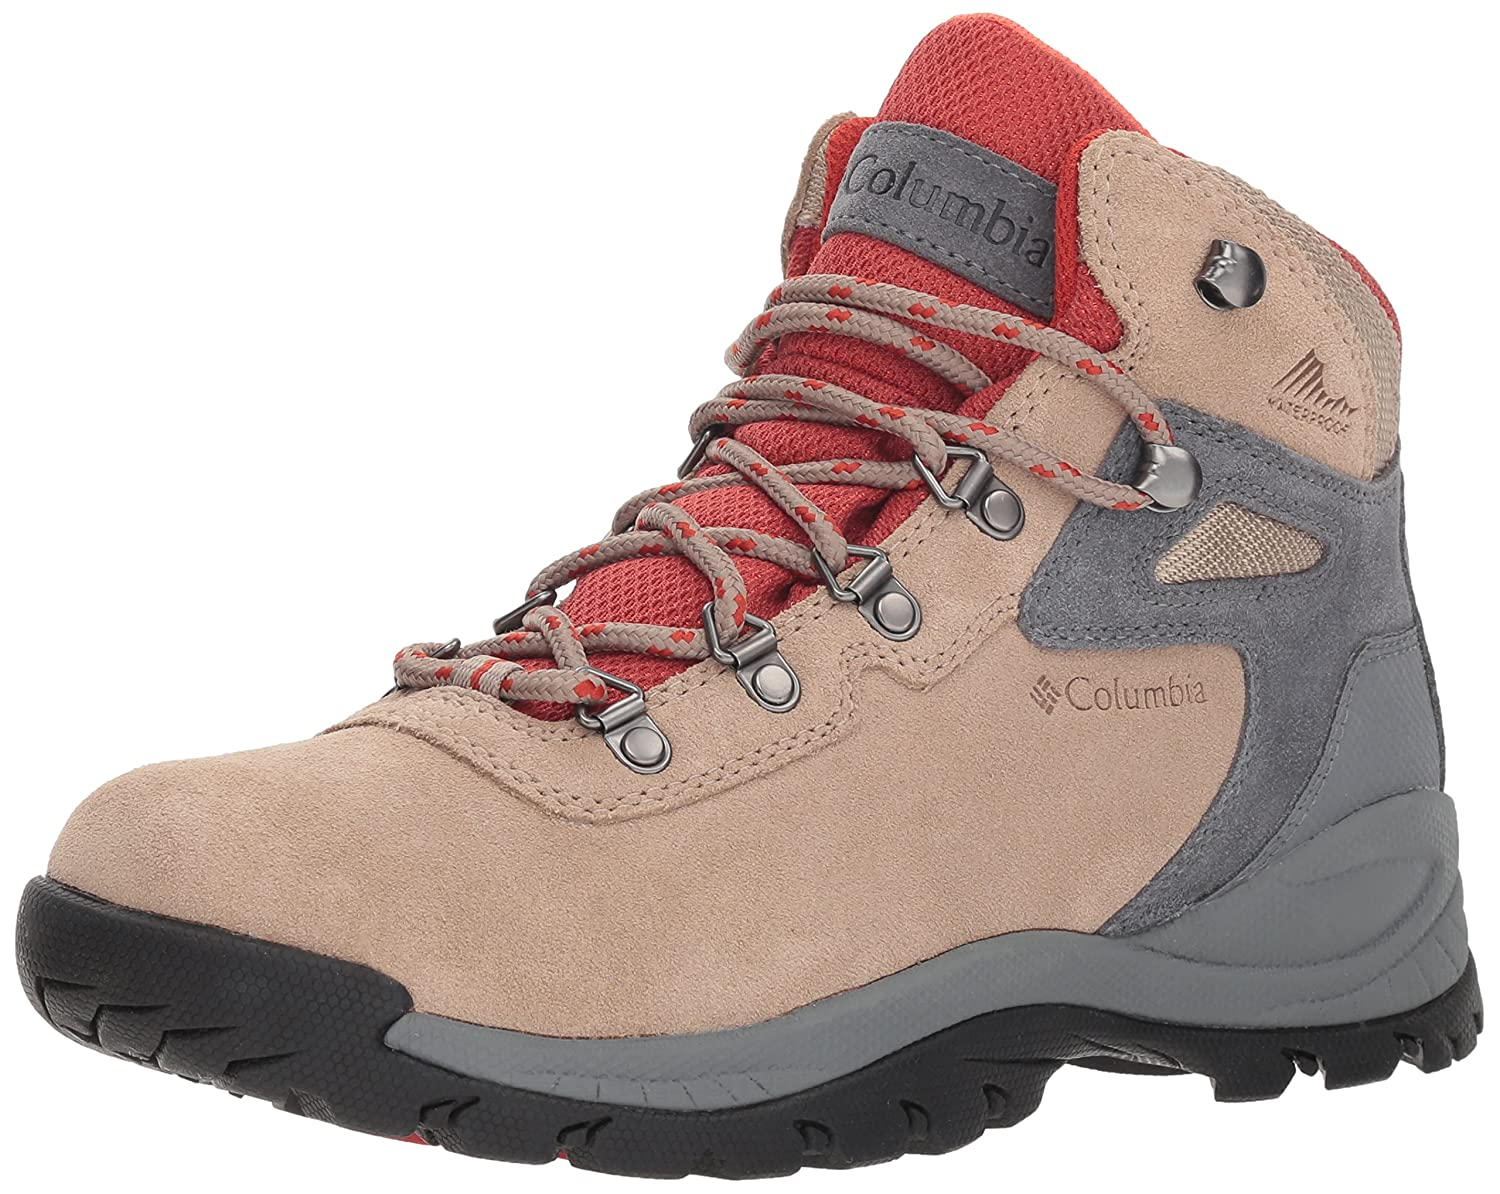 Columbia Women's Newton Ridge Plus Waterproof Amped Hiking Boot B0787GLJT2 7.5 M US|Oxford Tan, Flame